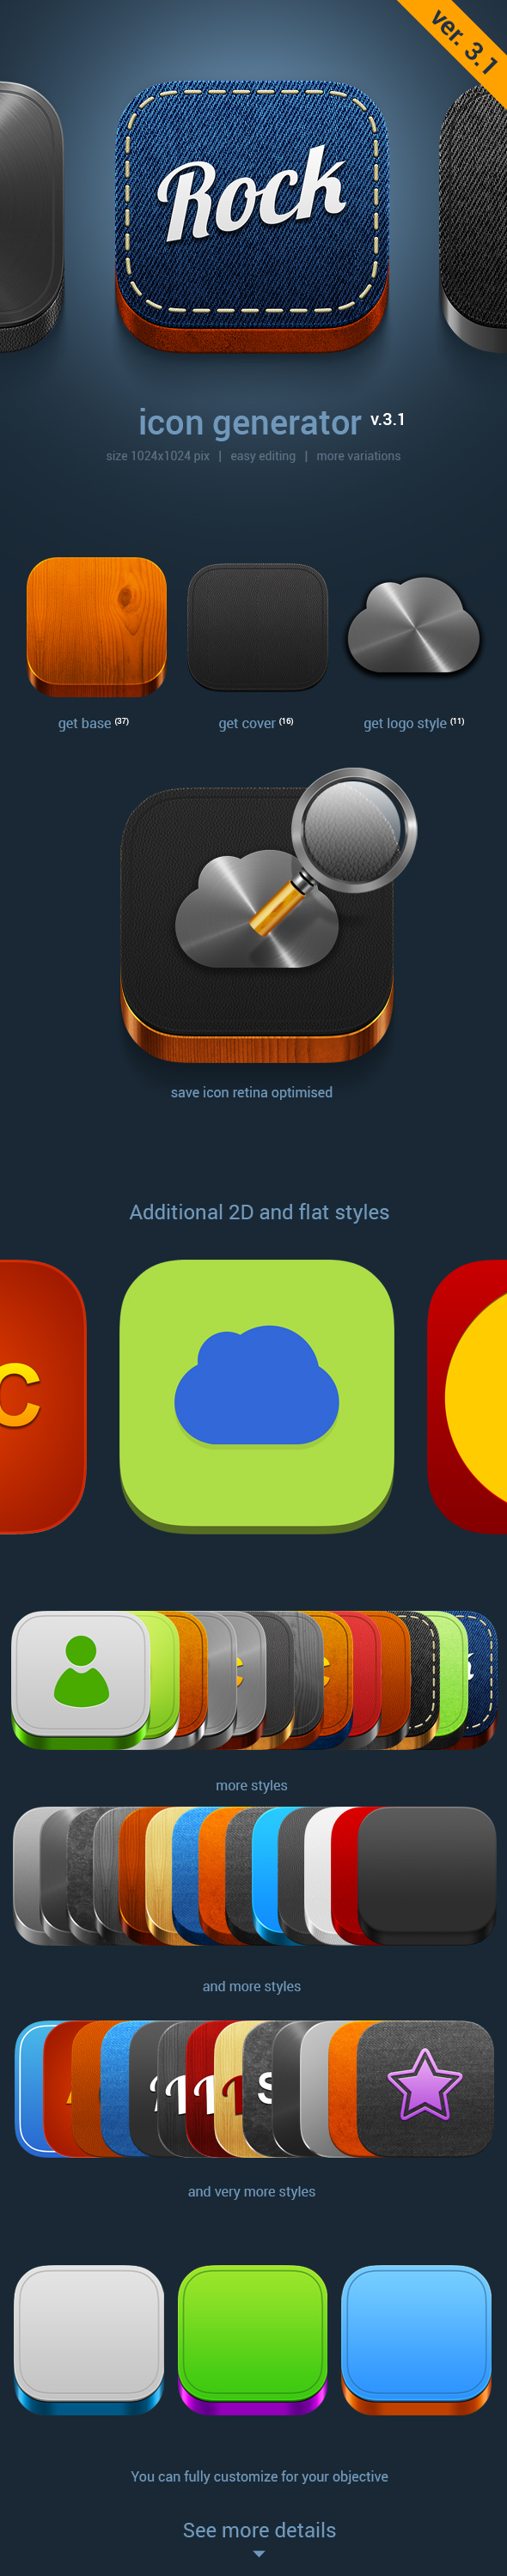 IOS7 icons generator by TIT0